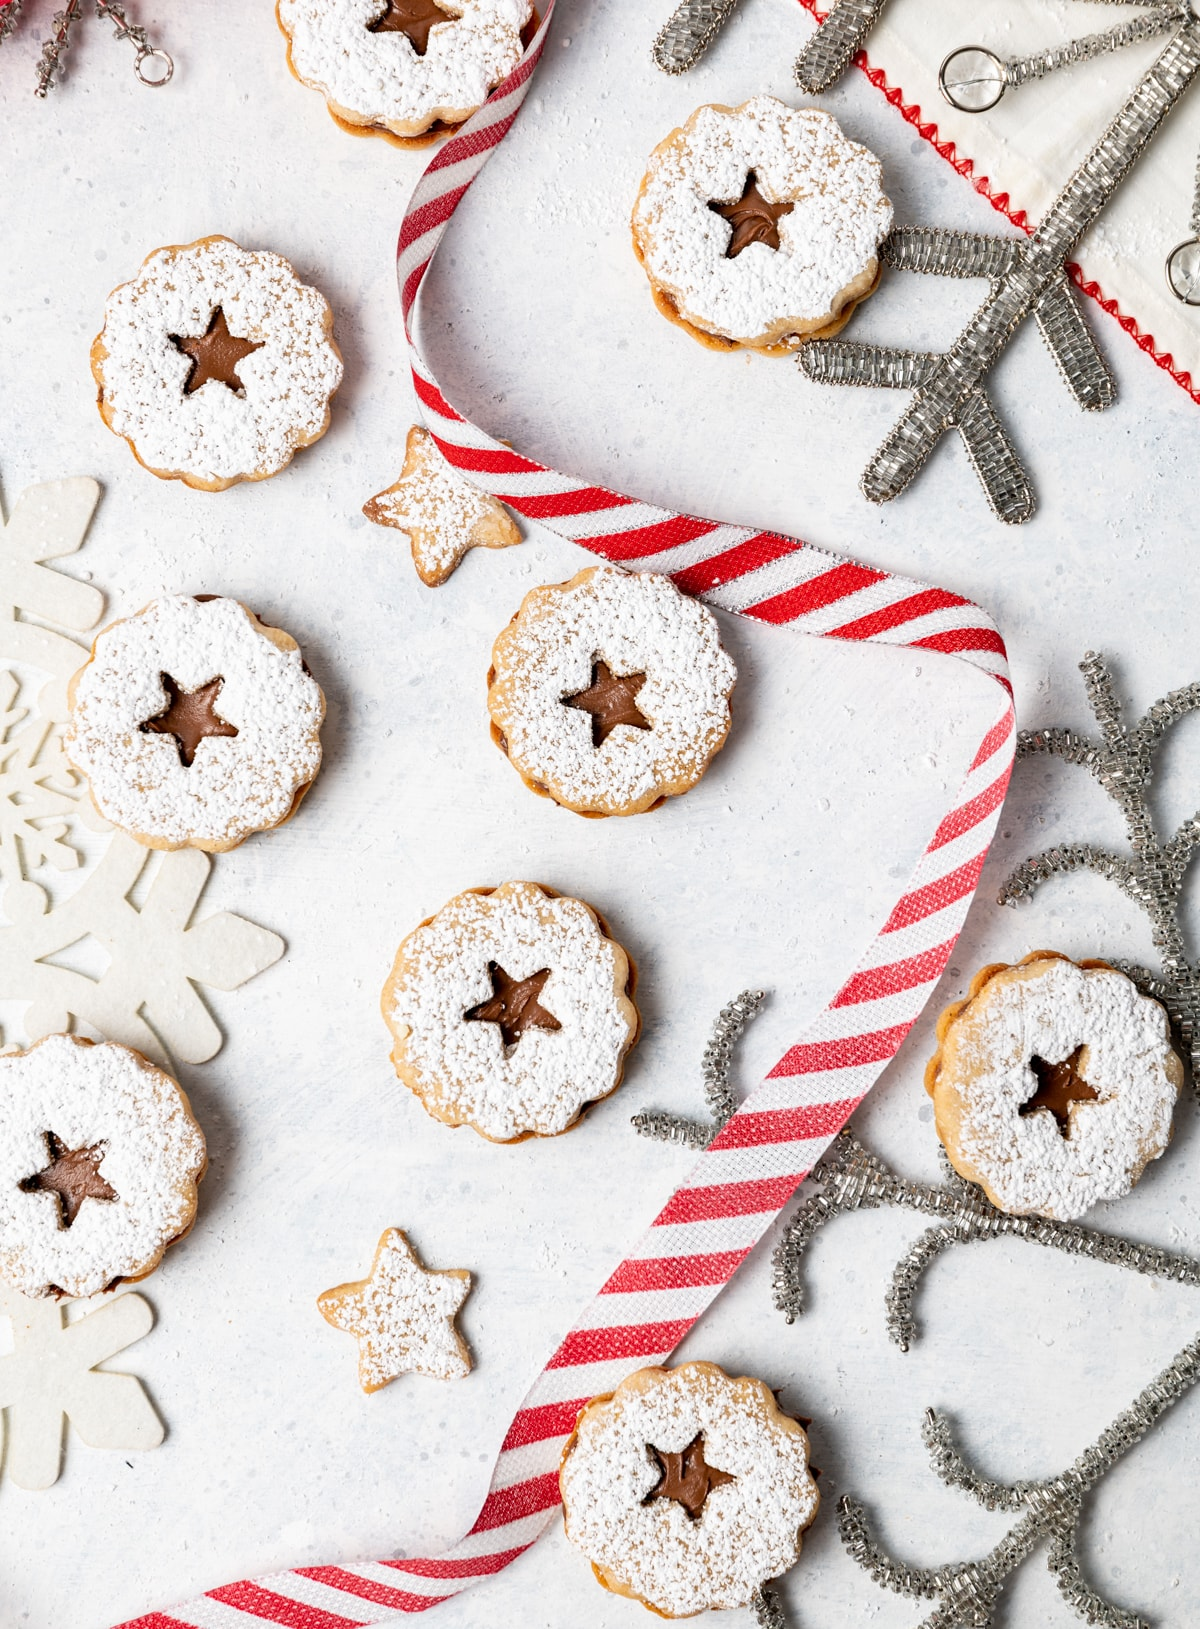 chocolate filled sandwich cookies on a white surface with red and white striped ribbon and silver snowflakes